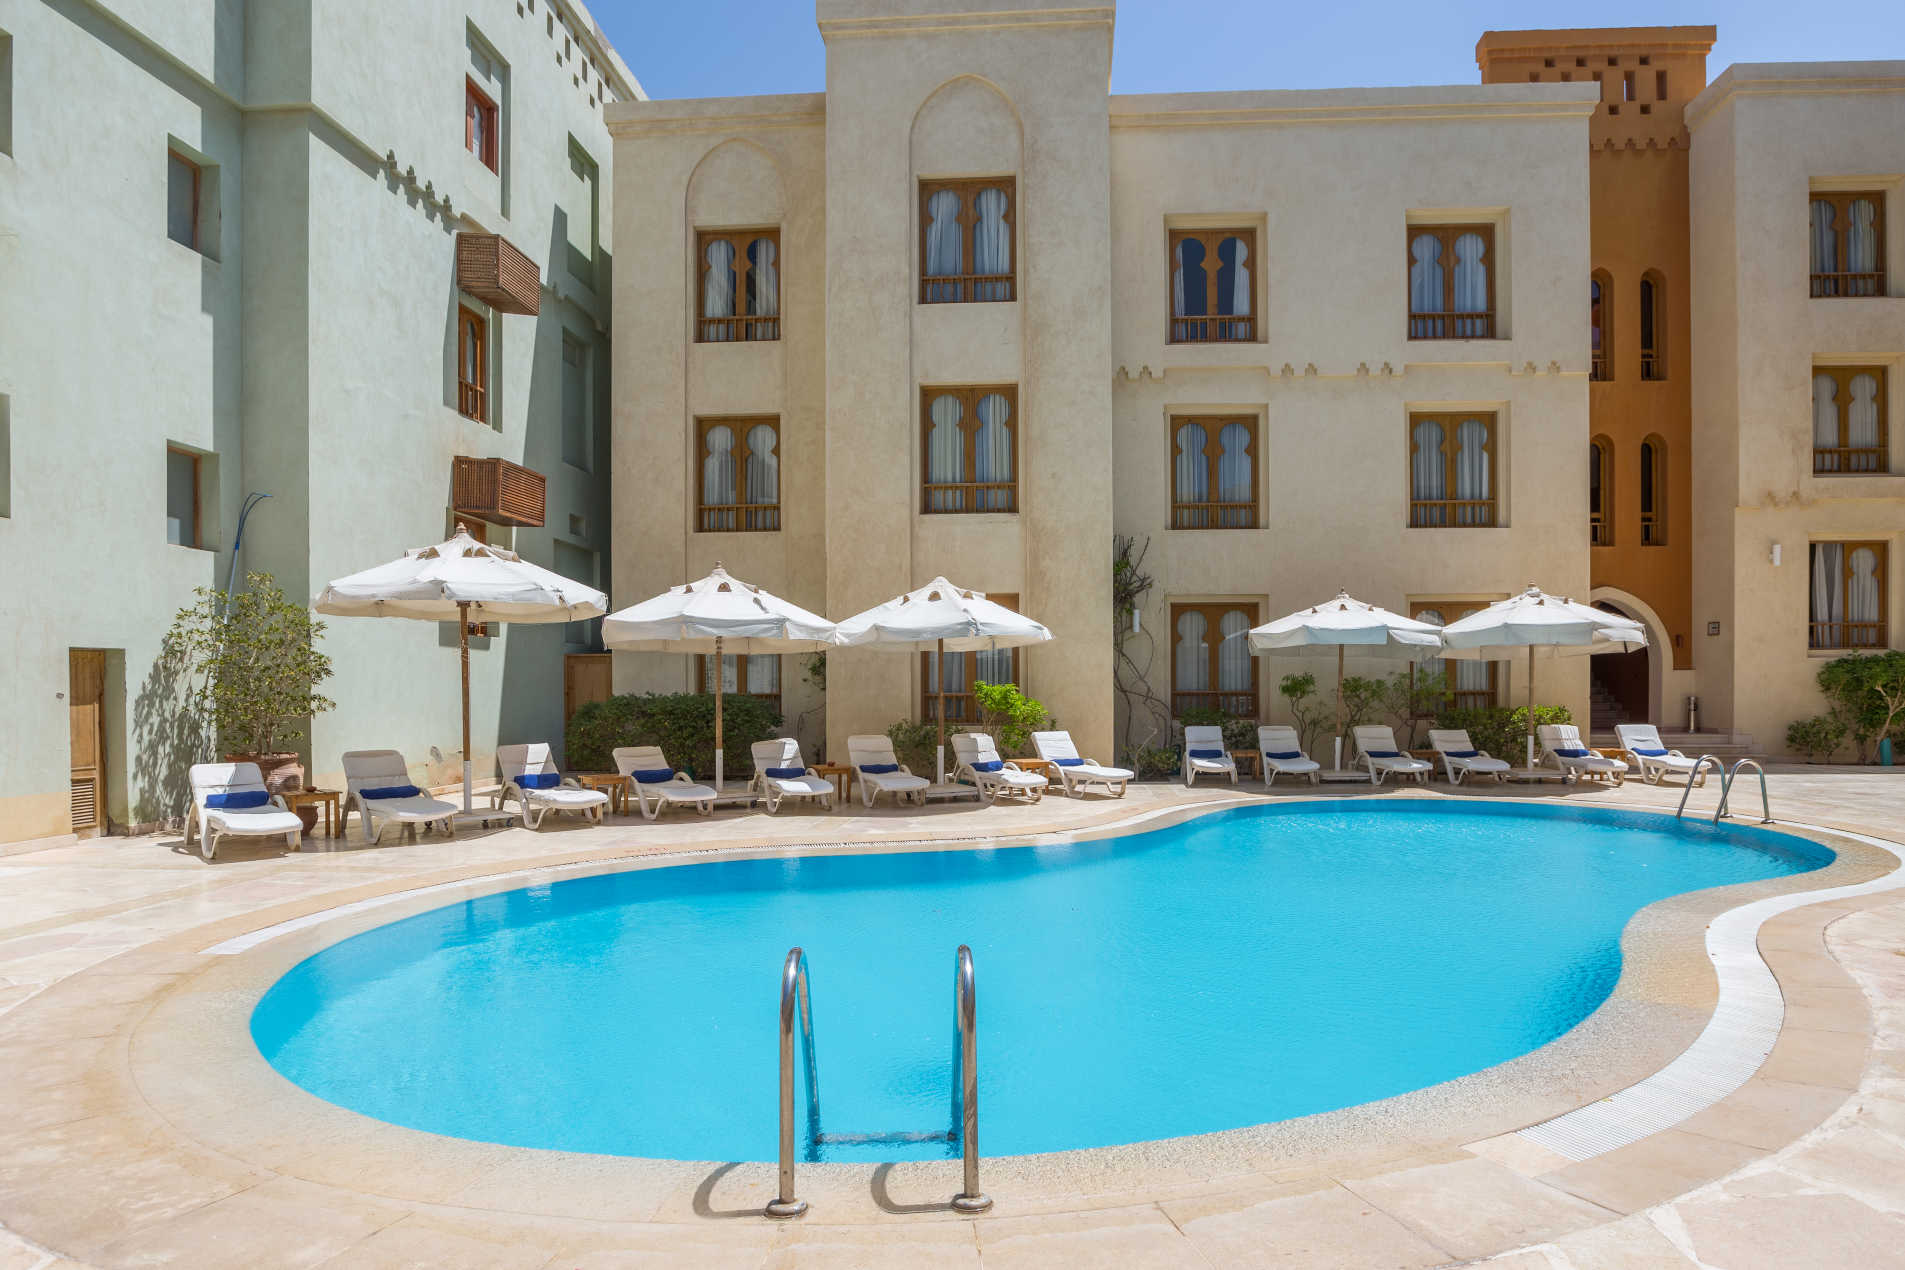 Ali Pasha hotel pool images